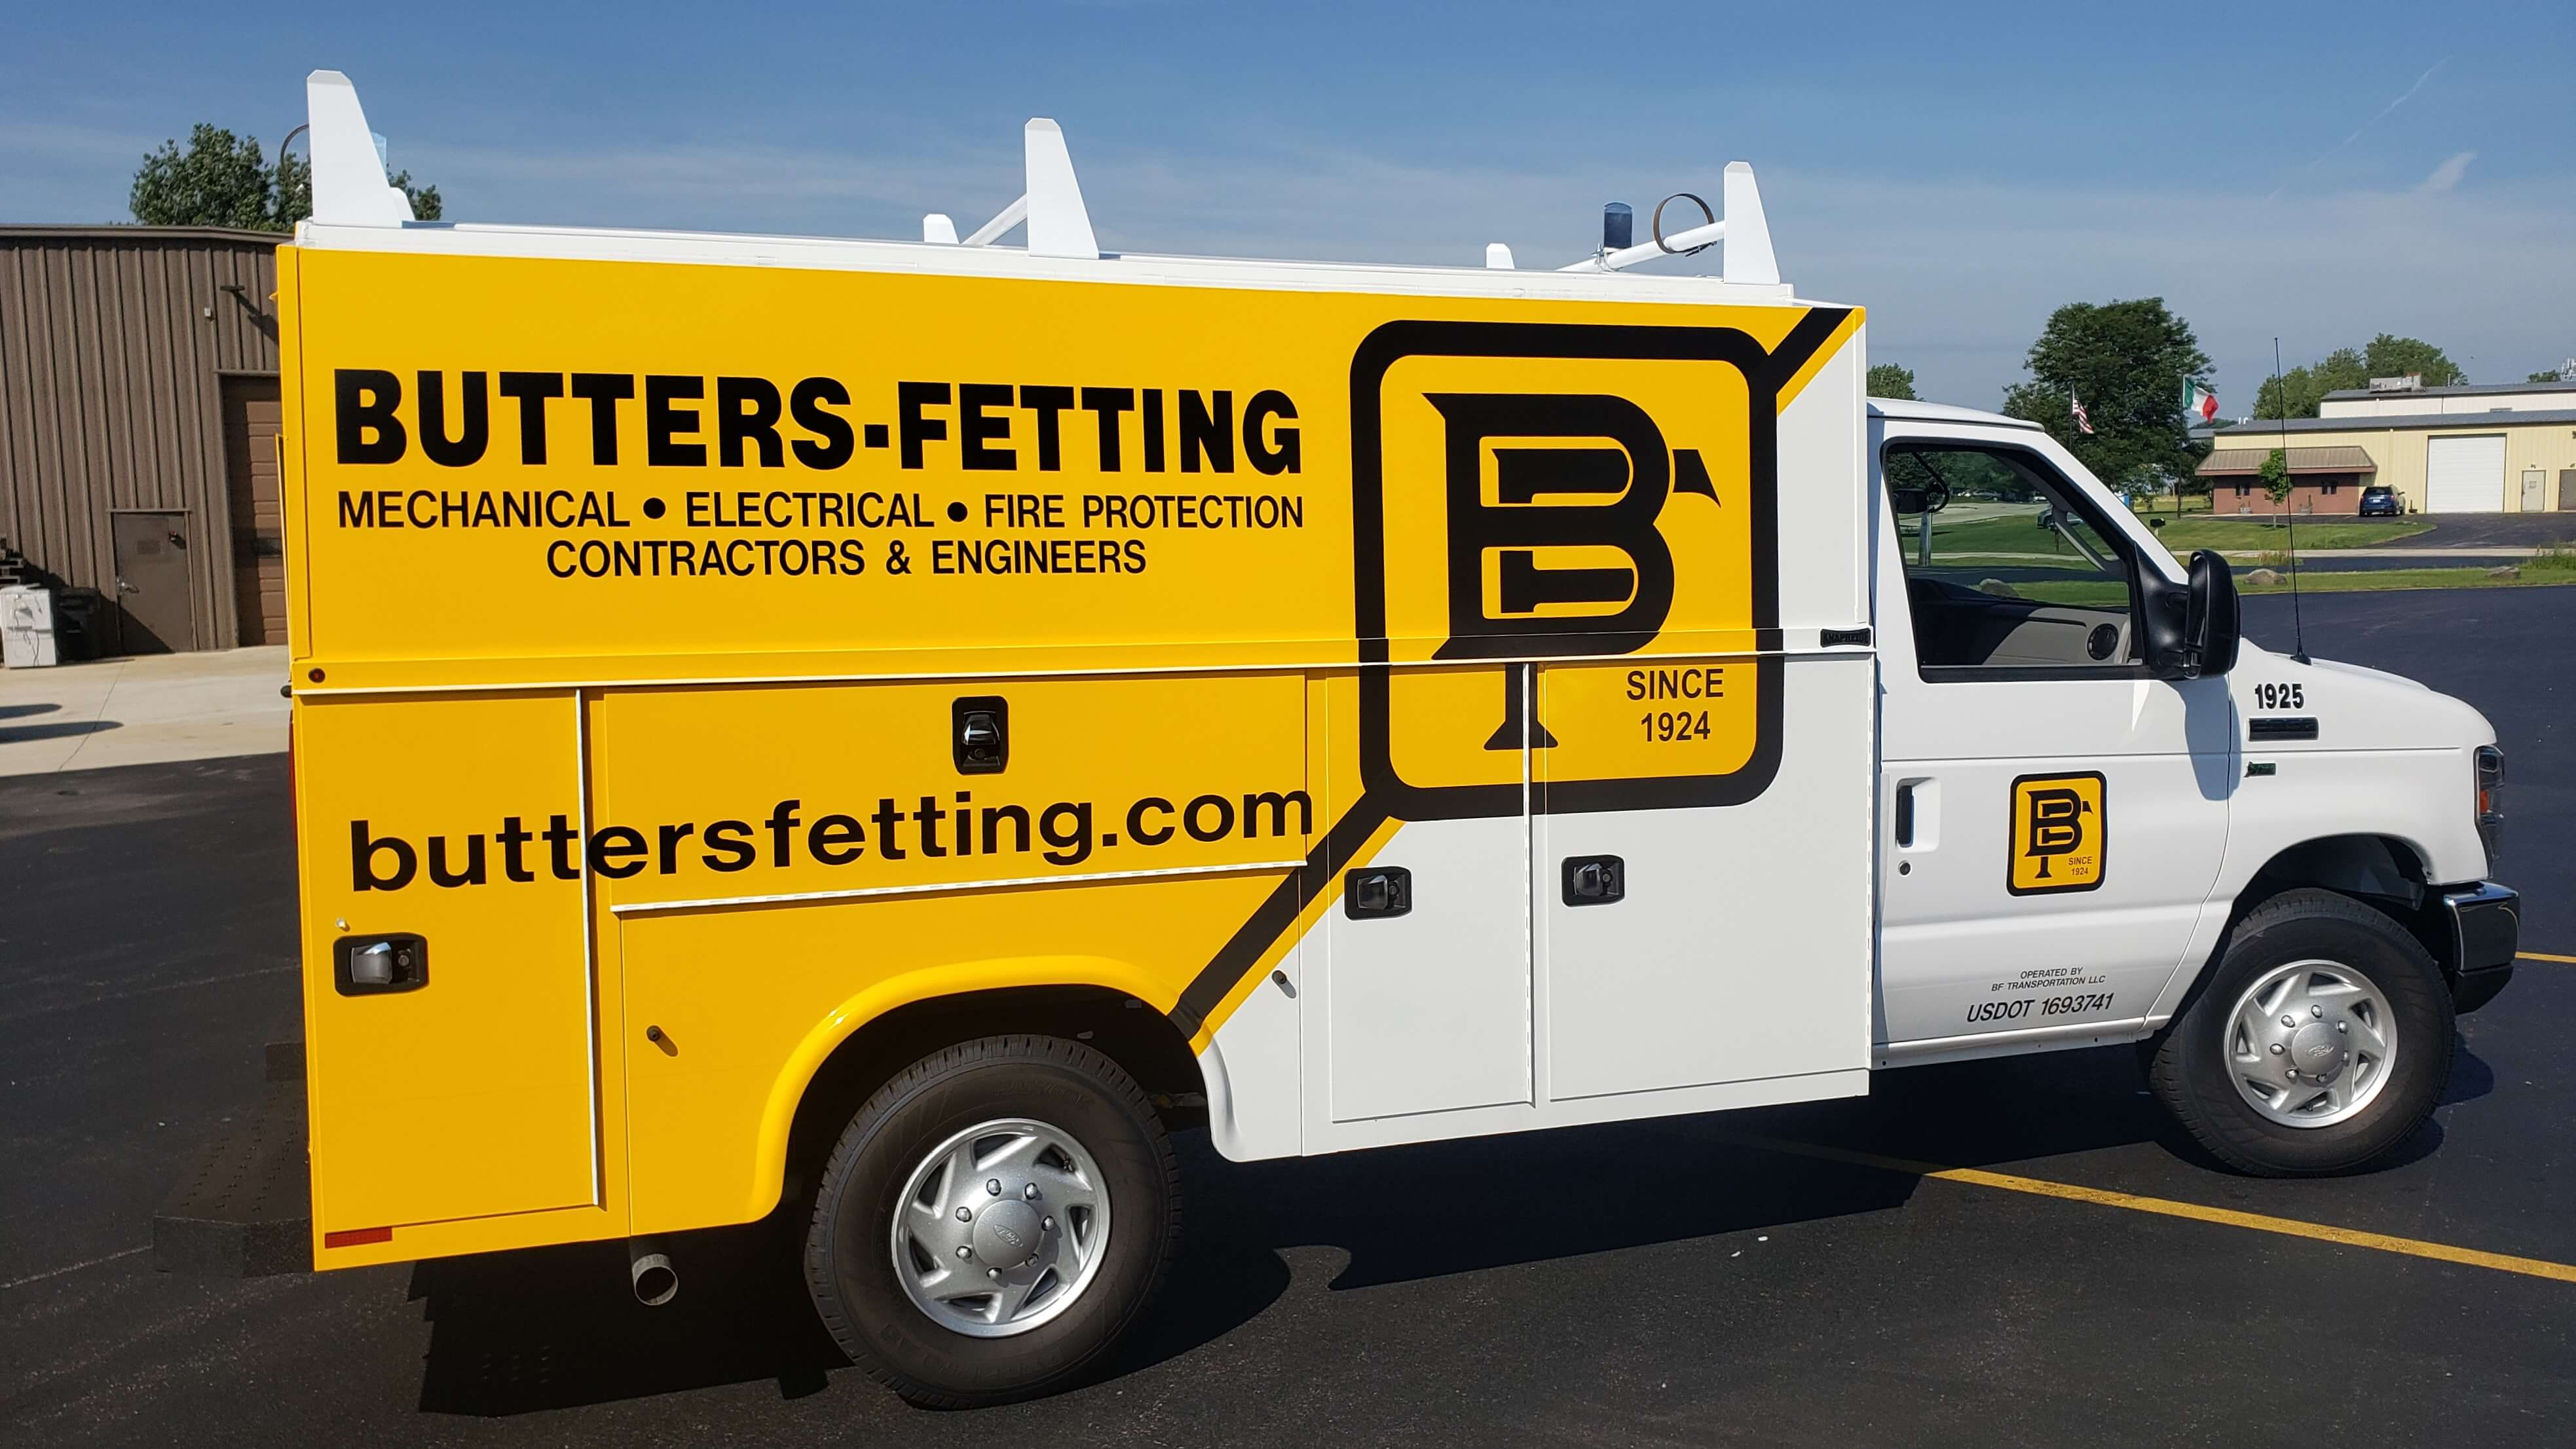 Yellow and Black Butters Fetting Service Truck Contractor Wrap Produced by Signs and Lines